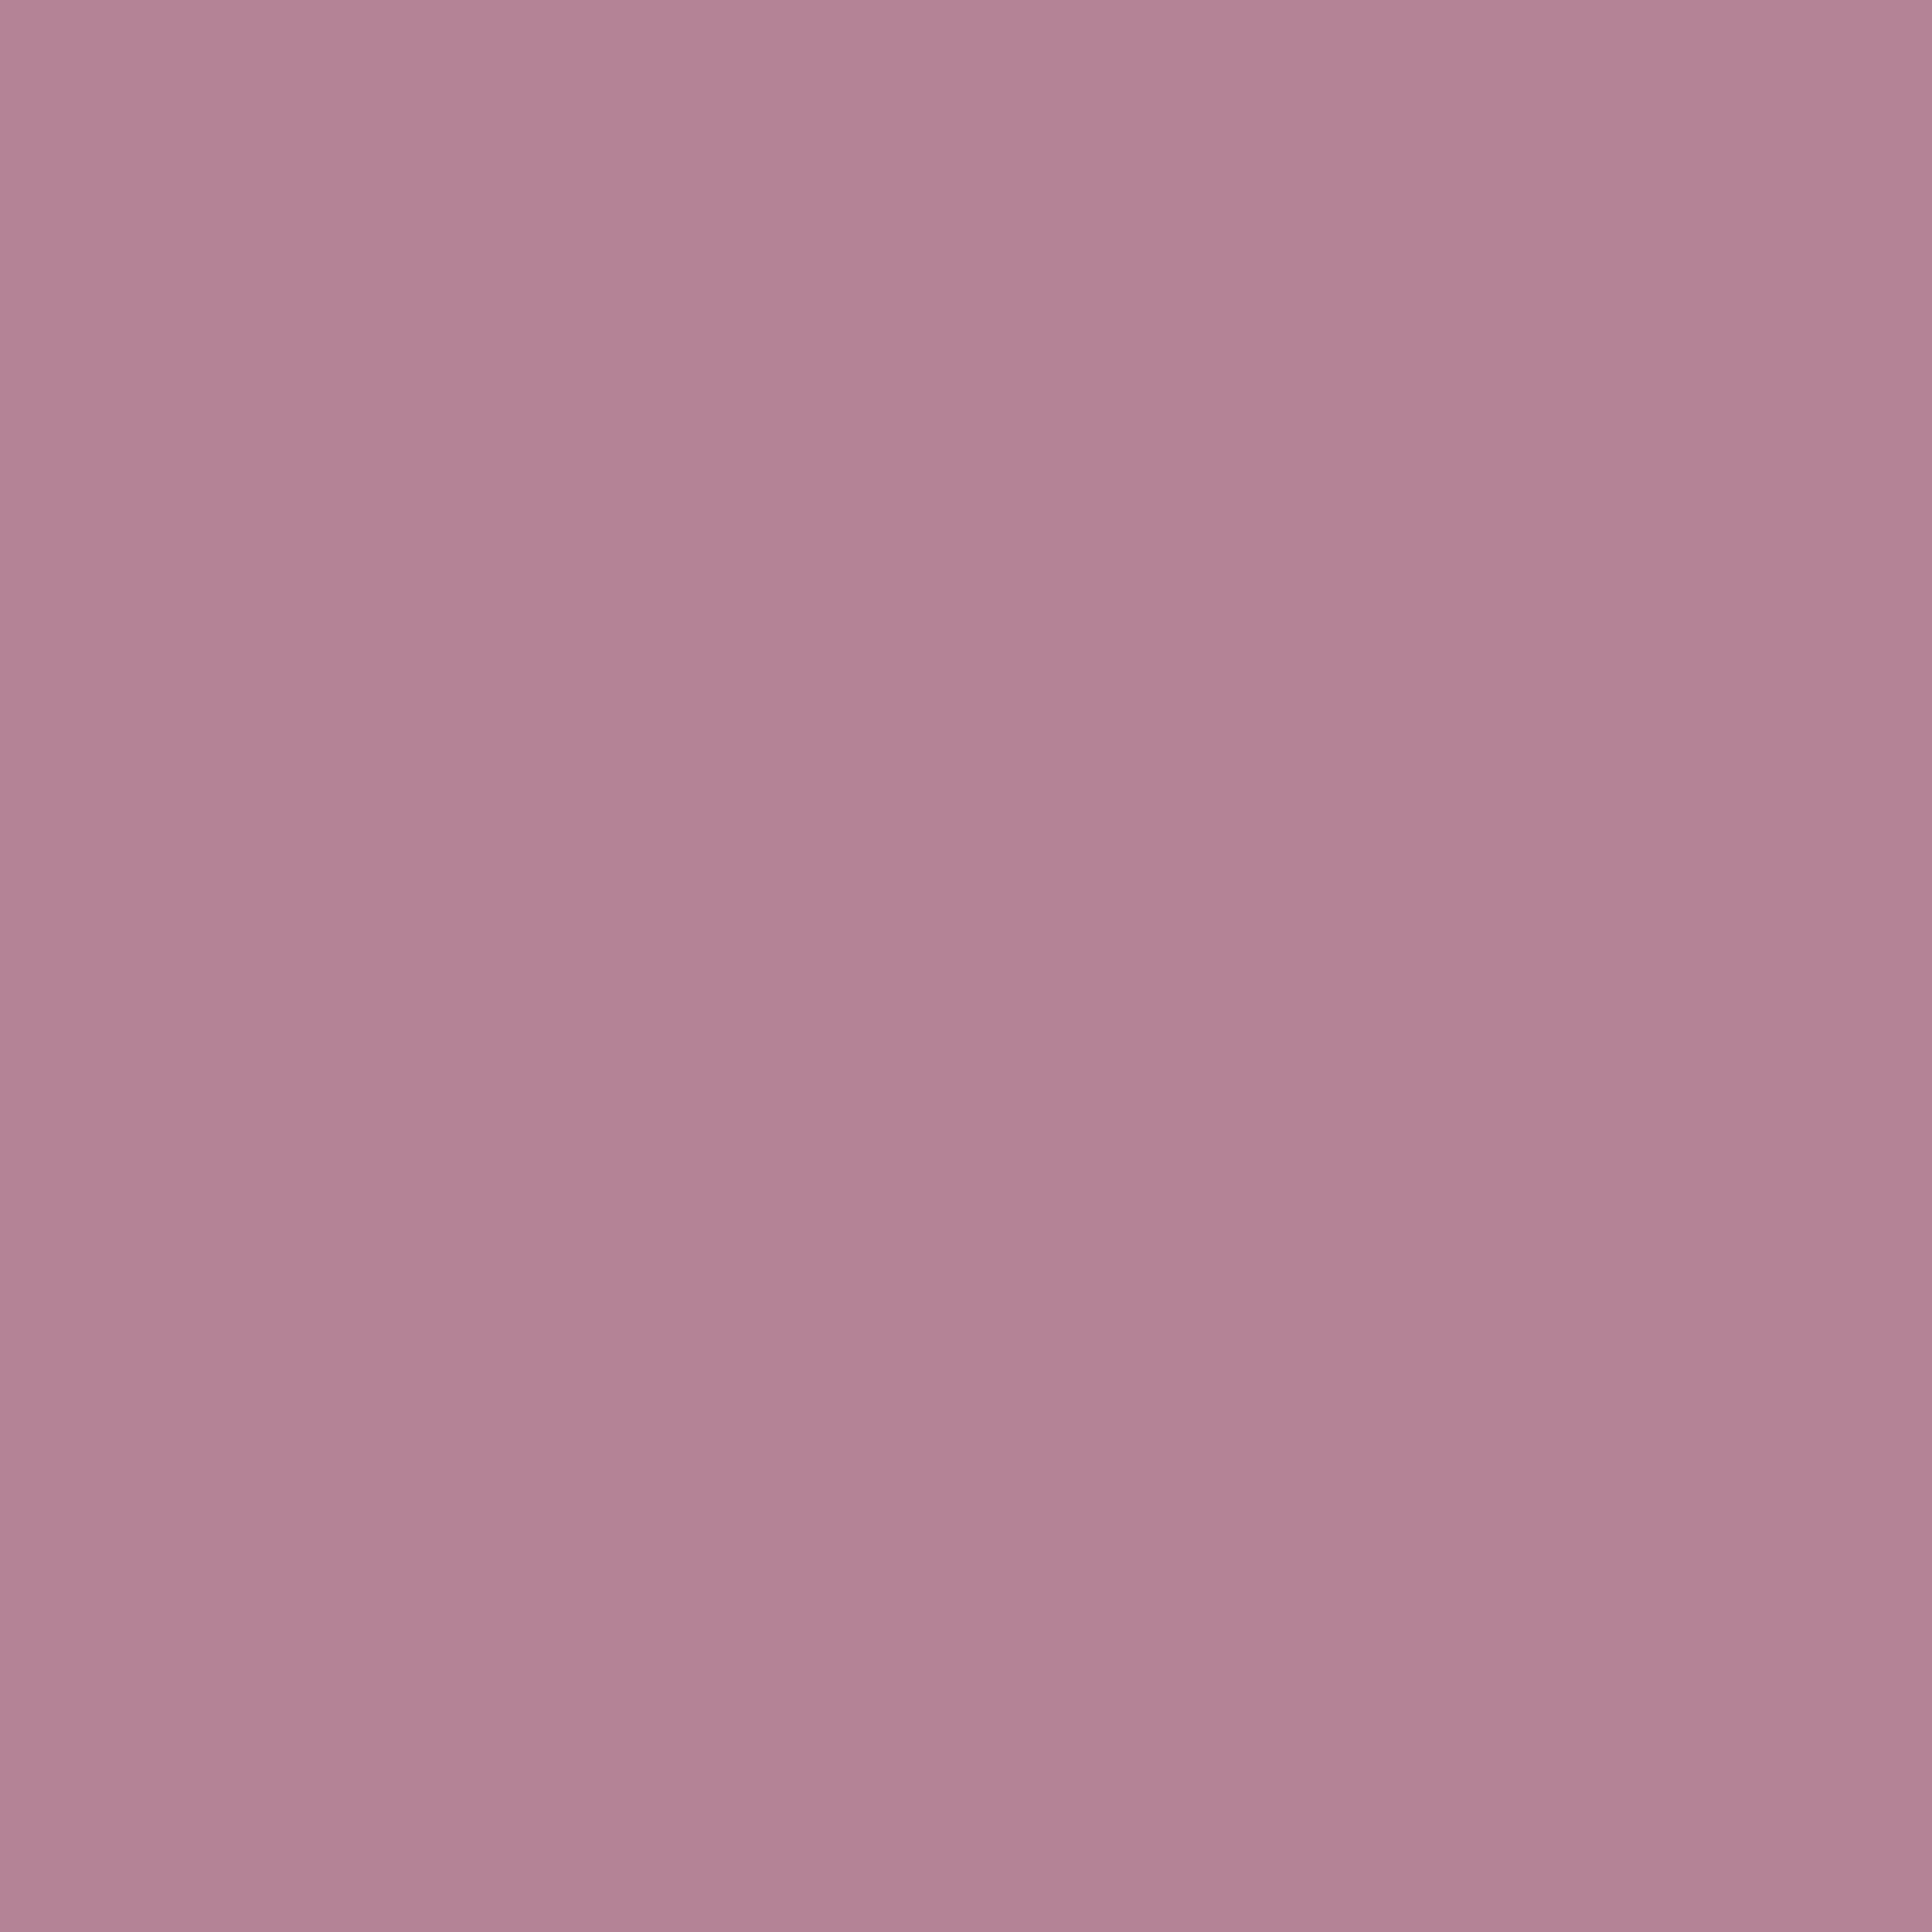 3600x3600 English Lavender Solid Color Background